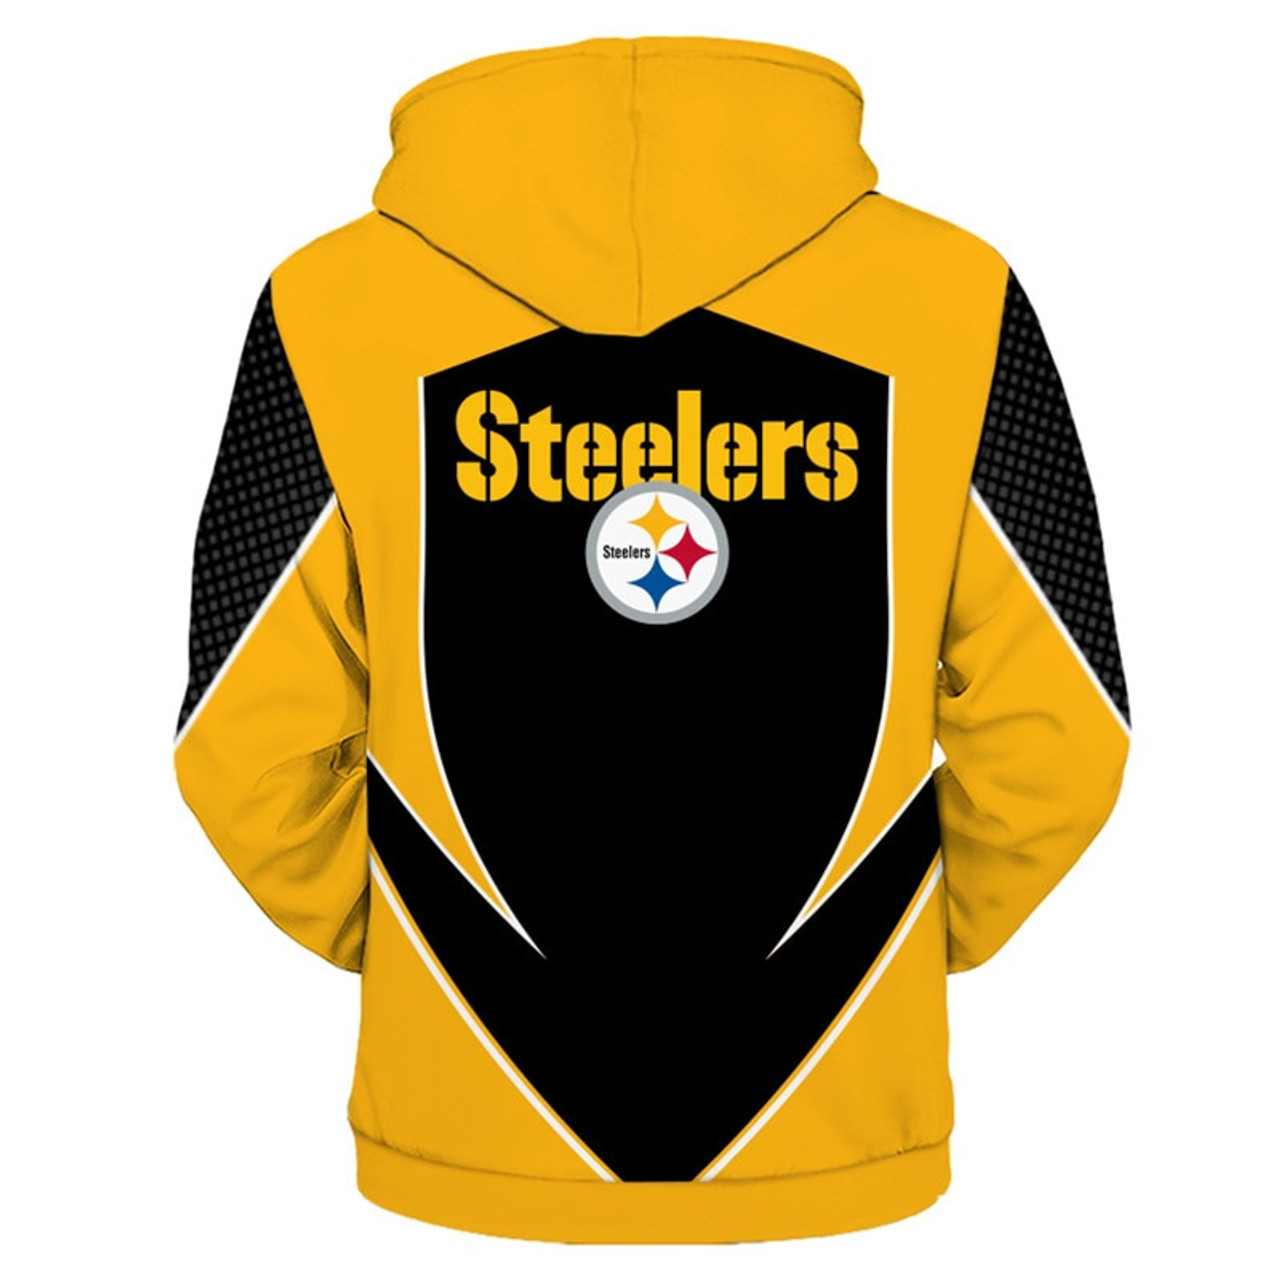 *(OFFICIAL-N.F.L.PITTSBURGH-STEELERS-TEAM-PULLOVER-HOODIES/NEW-CUSTOM-3D-GRAPHIC-PRINTED-DOUBLE-SIDED-DESIGN/ALL-OVER-OFFICIAL-CLASSIC-STEELERS-LOGOS & IN-STEELERS-TEAM-COLORS/WARM-PREMIUM-OFFICIAL-N.F.L.STEELERS-TEAM-PULLOVER-DEEP-POCKET-HOODIES)*